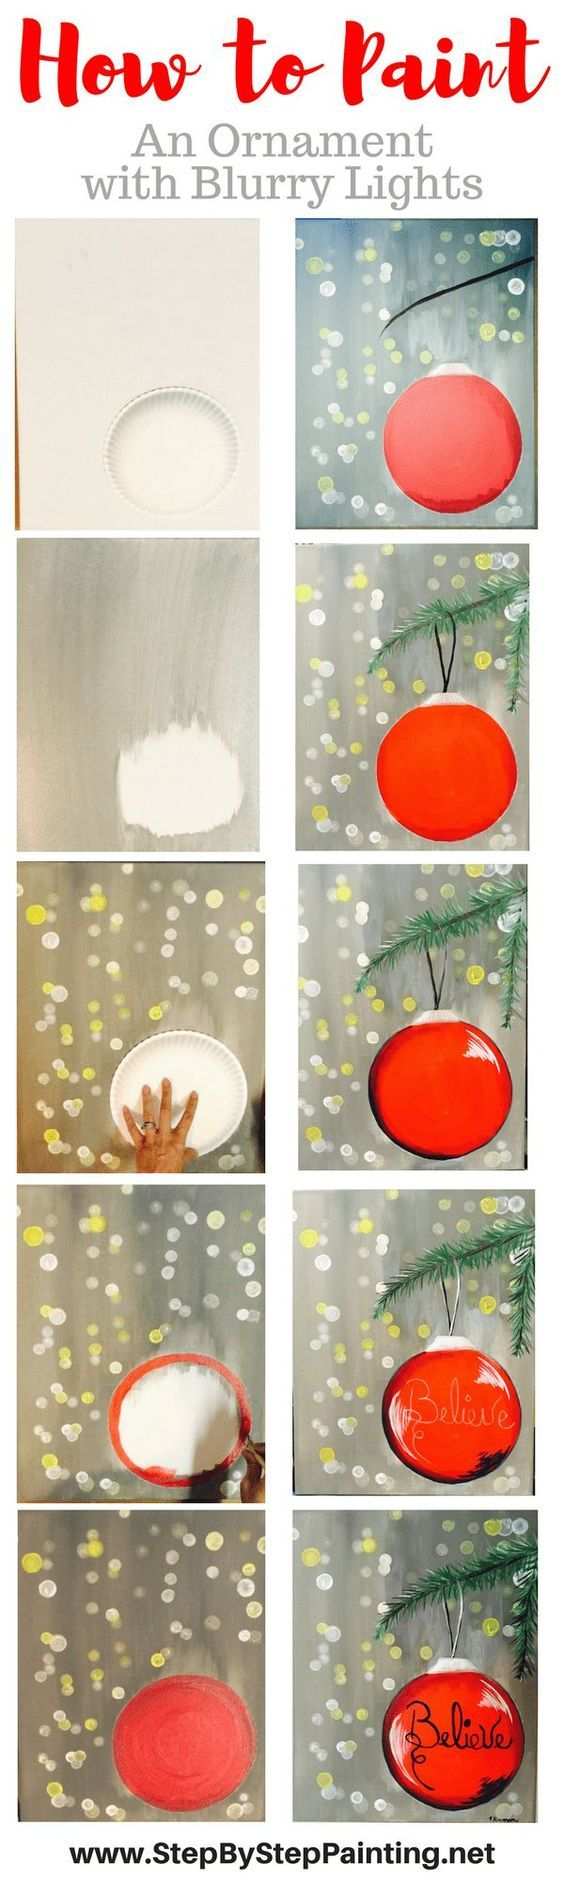 How To Paint An Ornament With Blurry Lights - Tracie's Canvas Tutorials